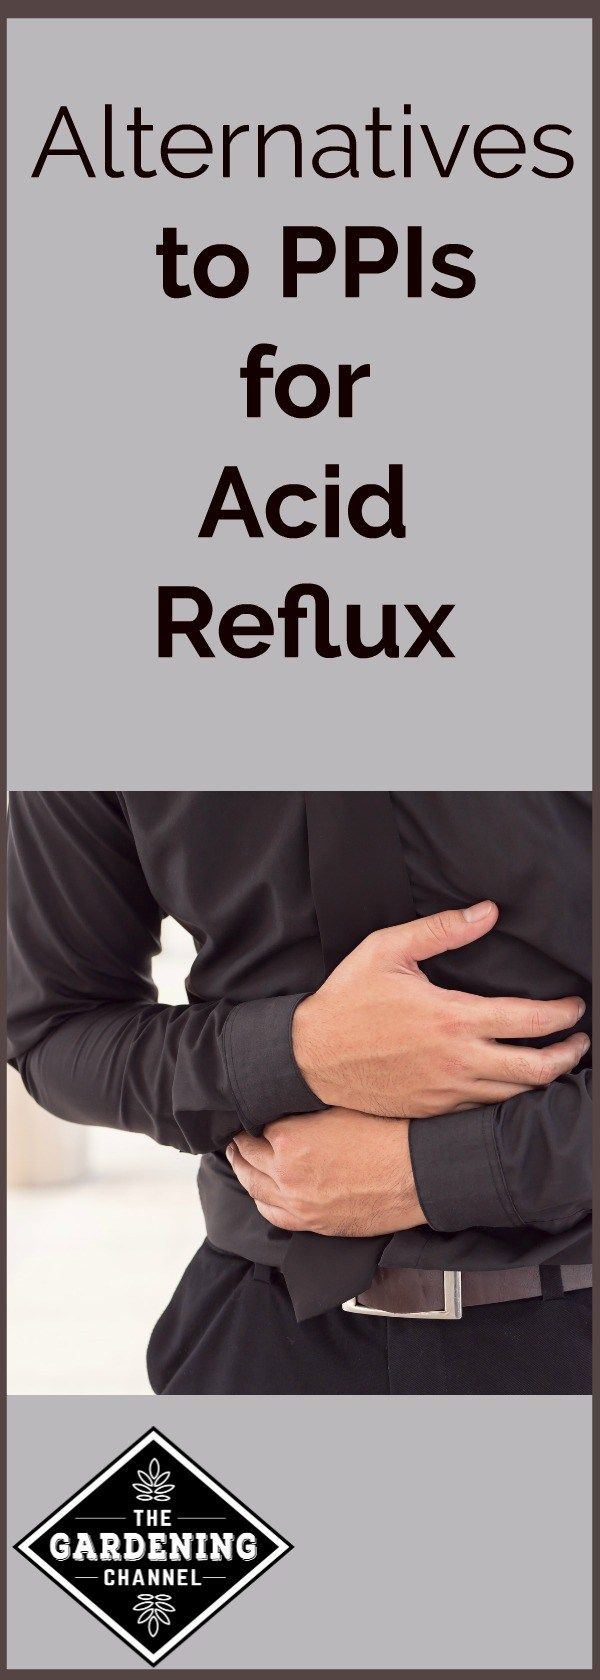 Acid reflux alternatives to PPIs.  New studies have shed light on how proton pump inhibitors may lead to increased risk of stomach cancer.